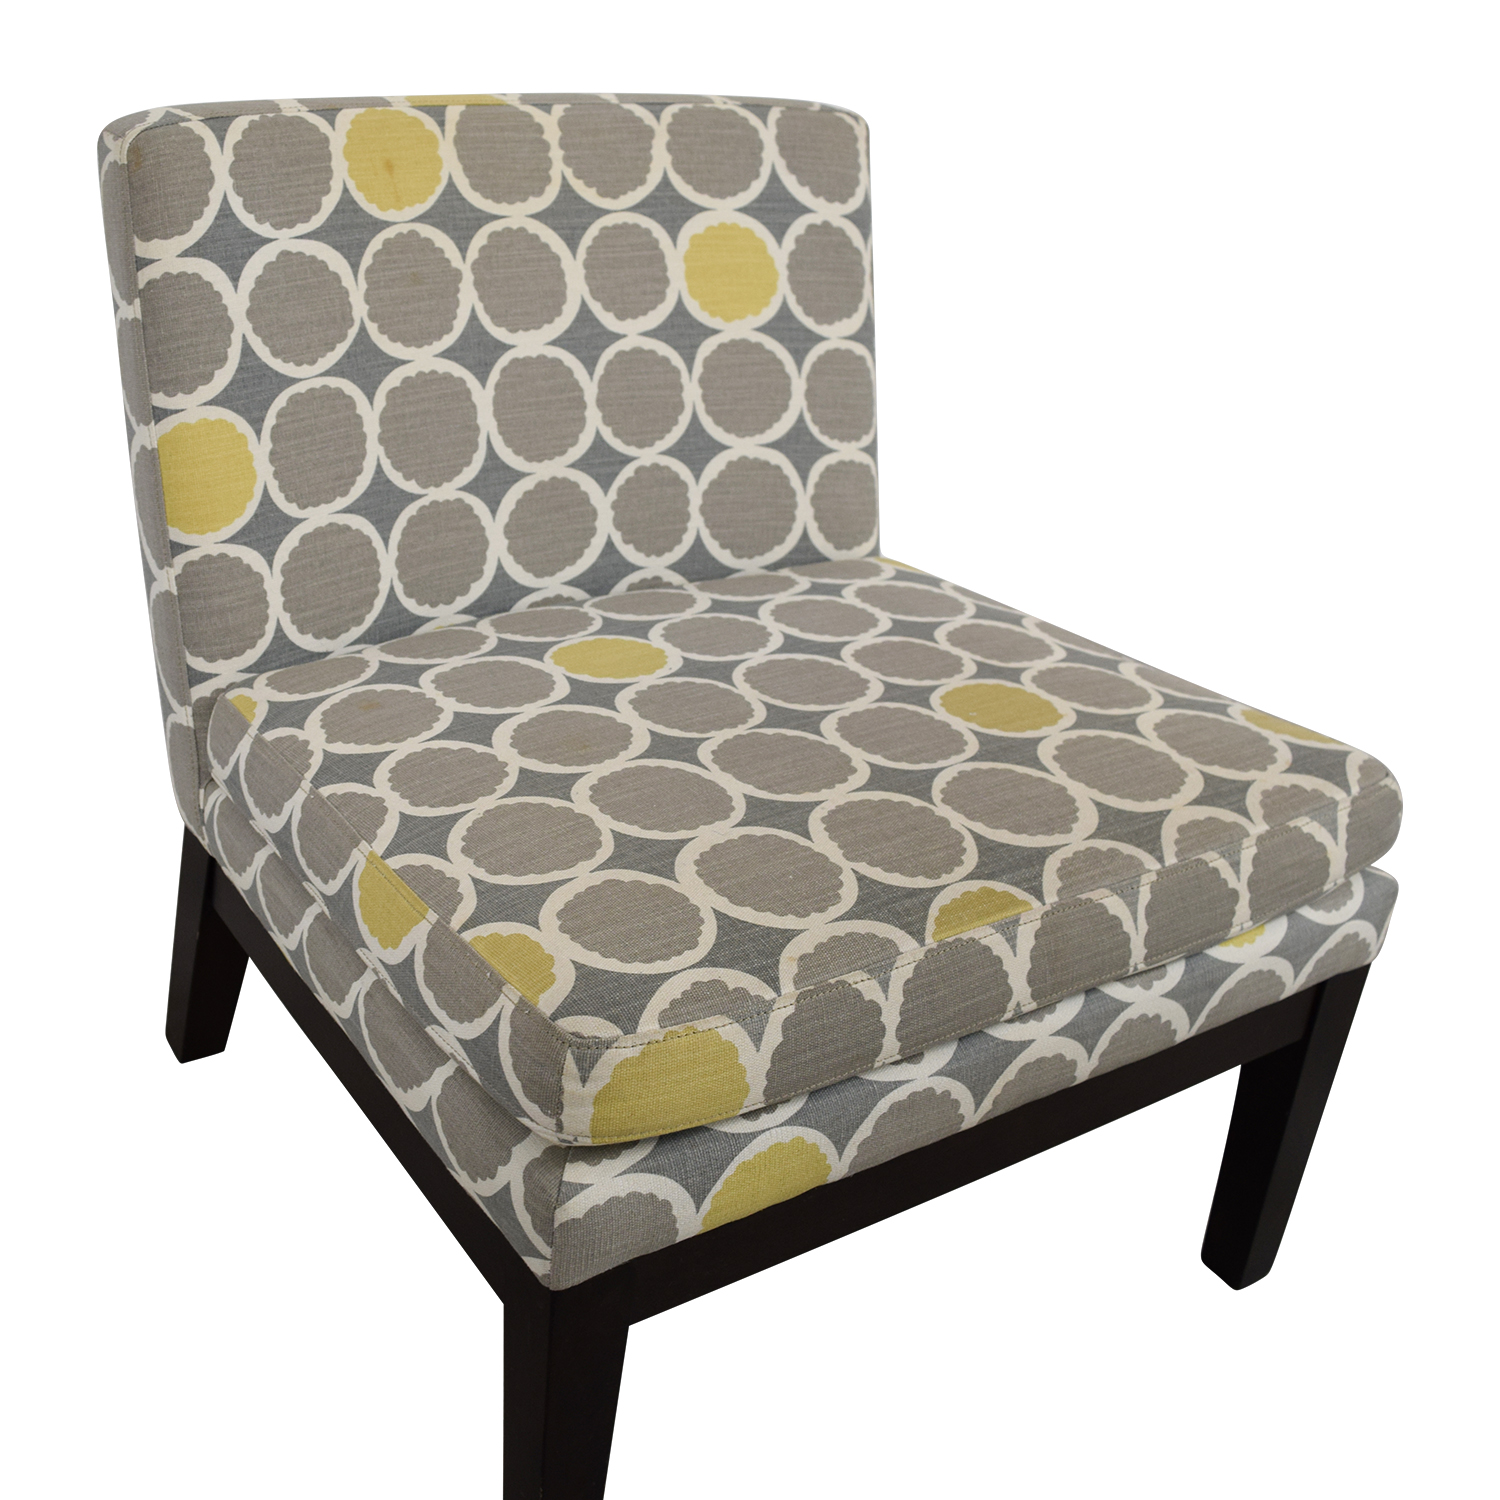 gray and yellow accent chair folding pepperfry 72 off west elm grey white